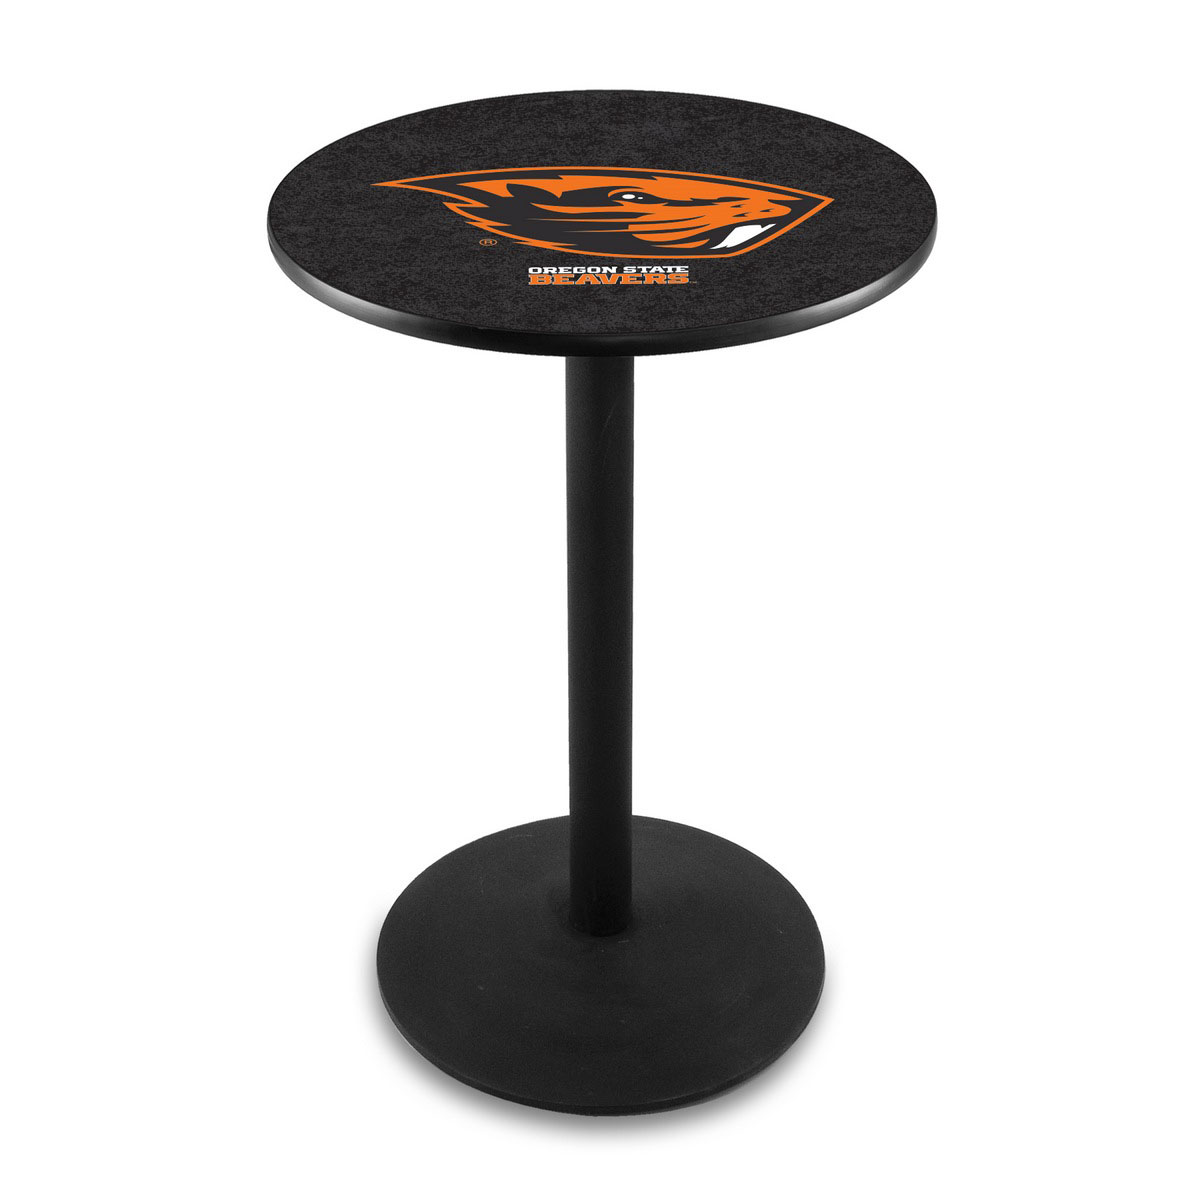 Remarkable Oregon State University Logo Pub Bar Table Round Stand Product Photo